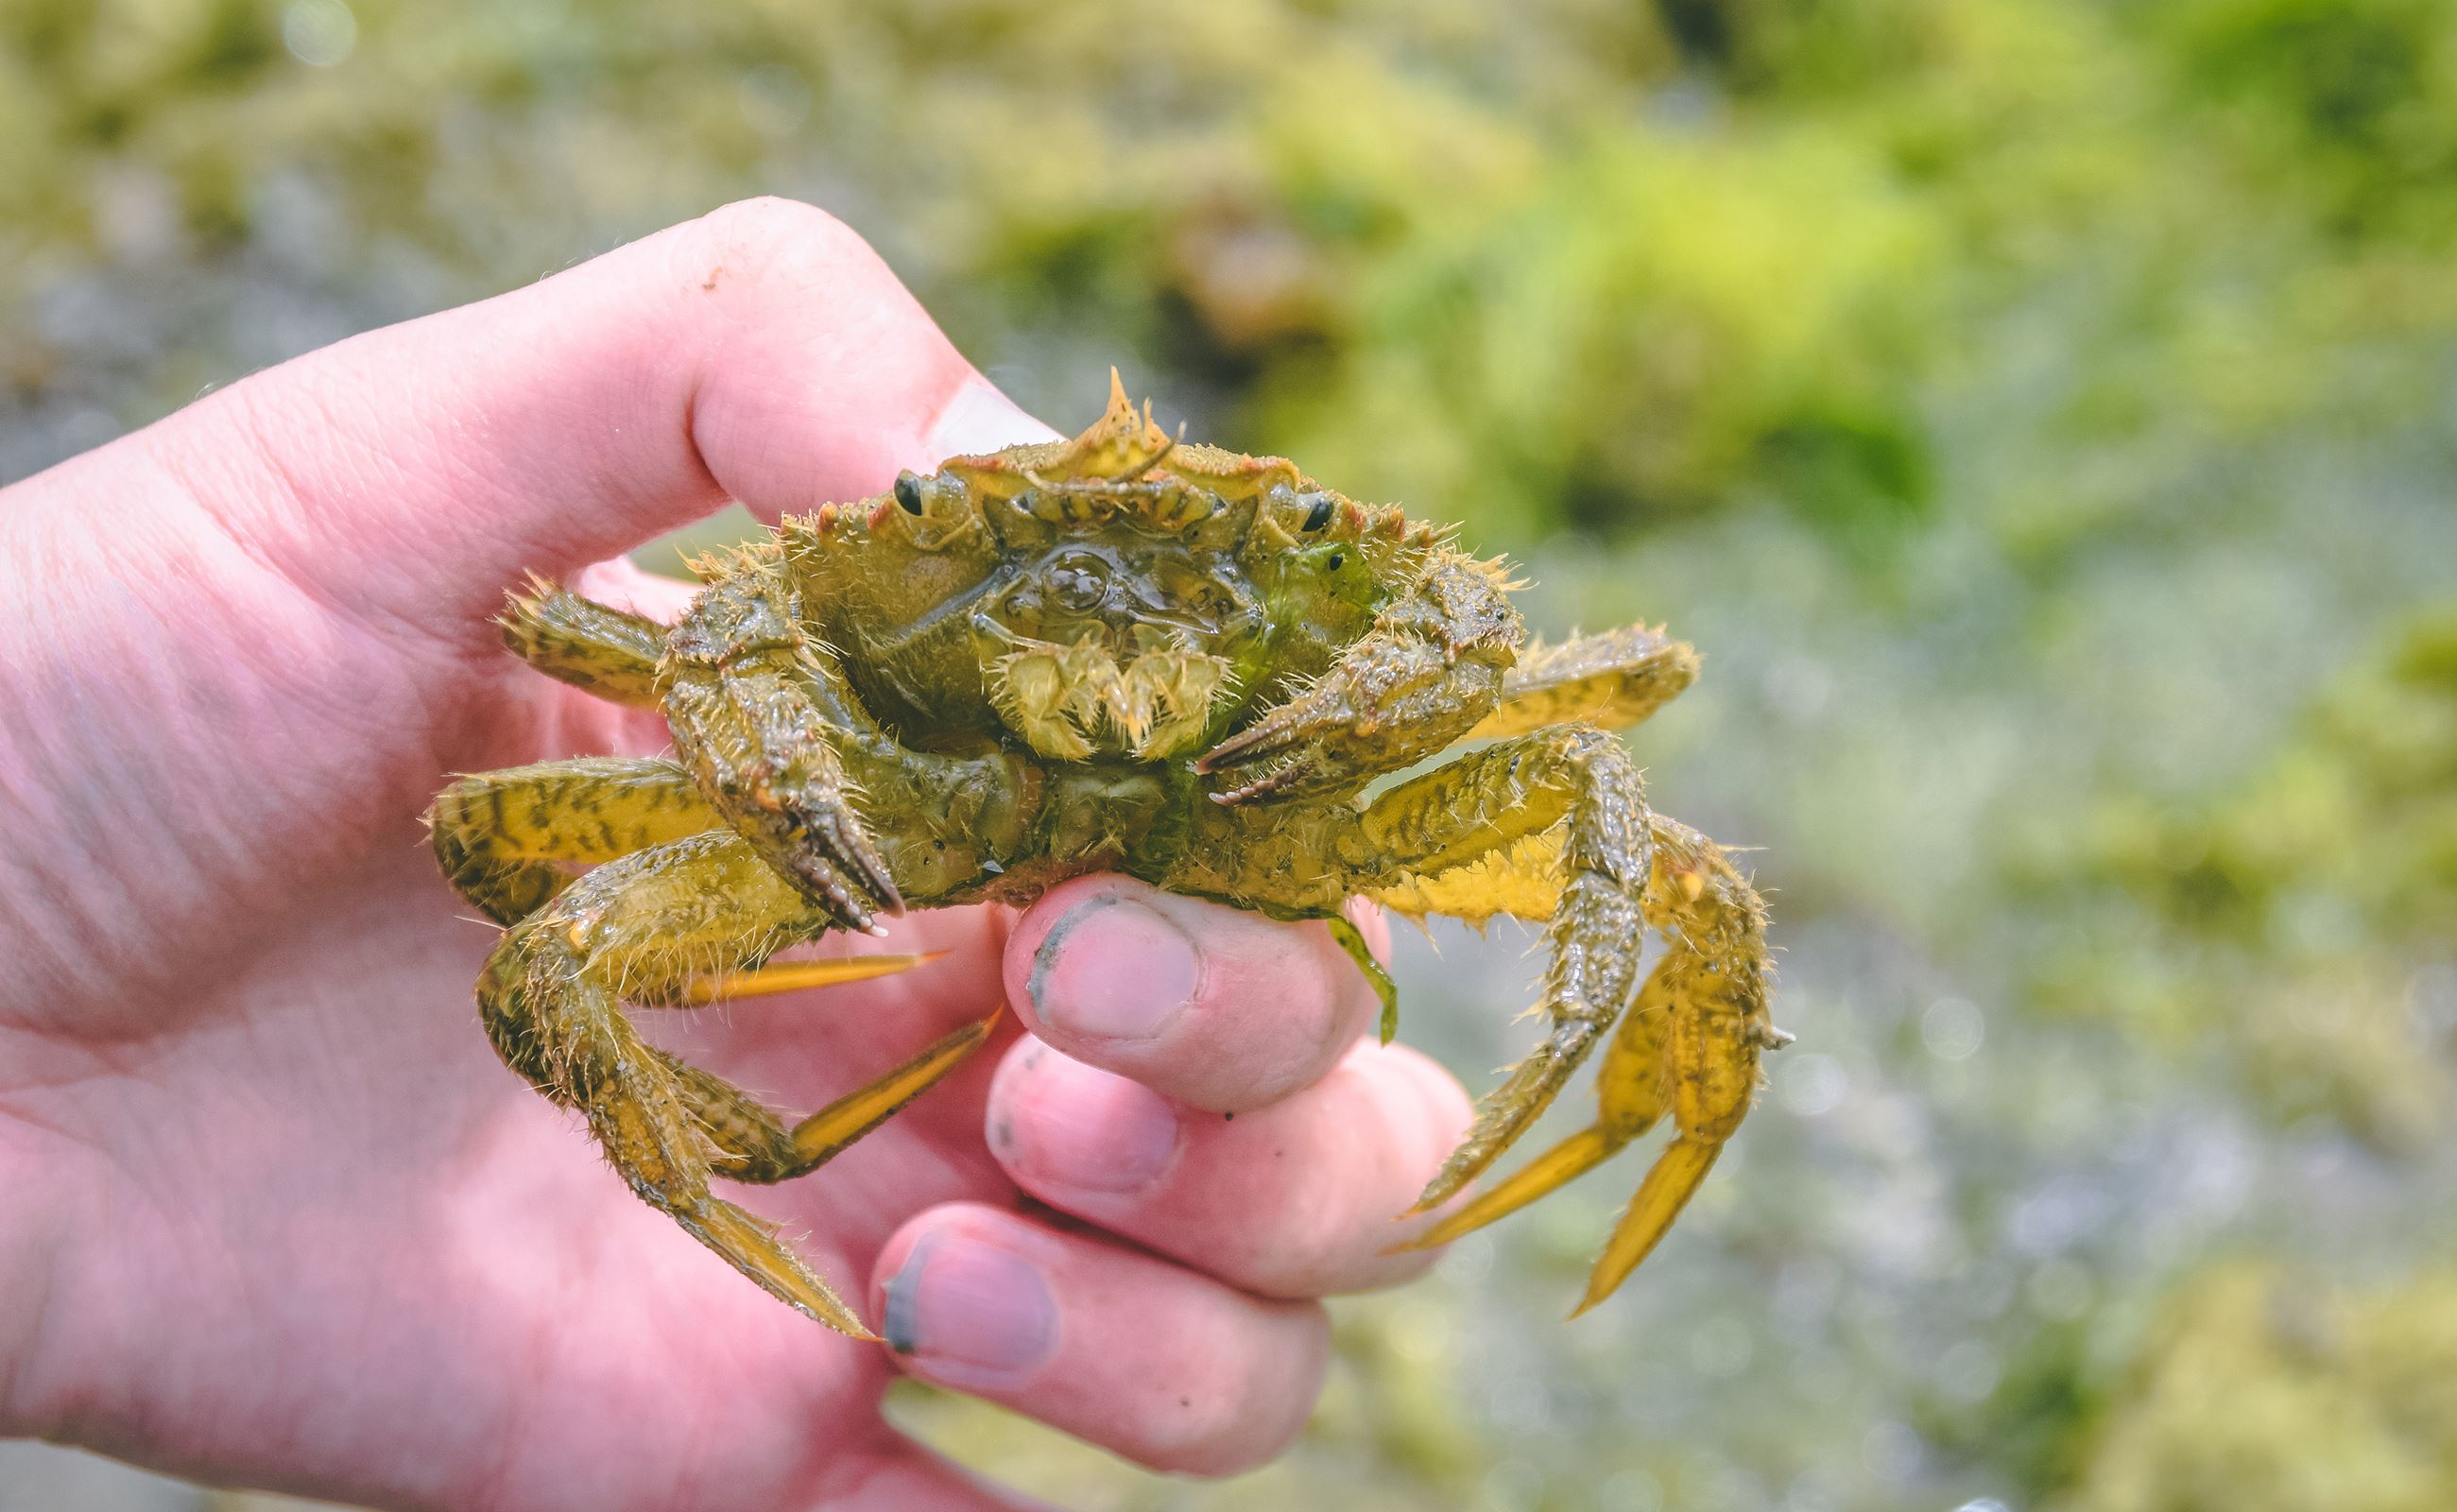 A helmet crab at Penrose Point State Park